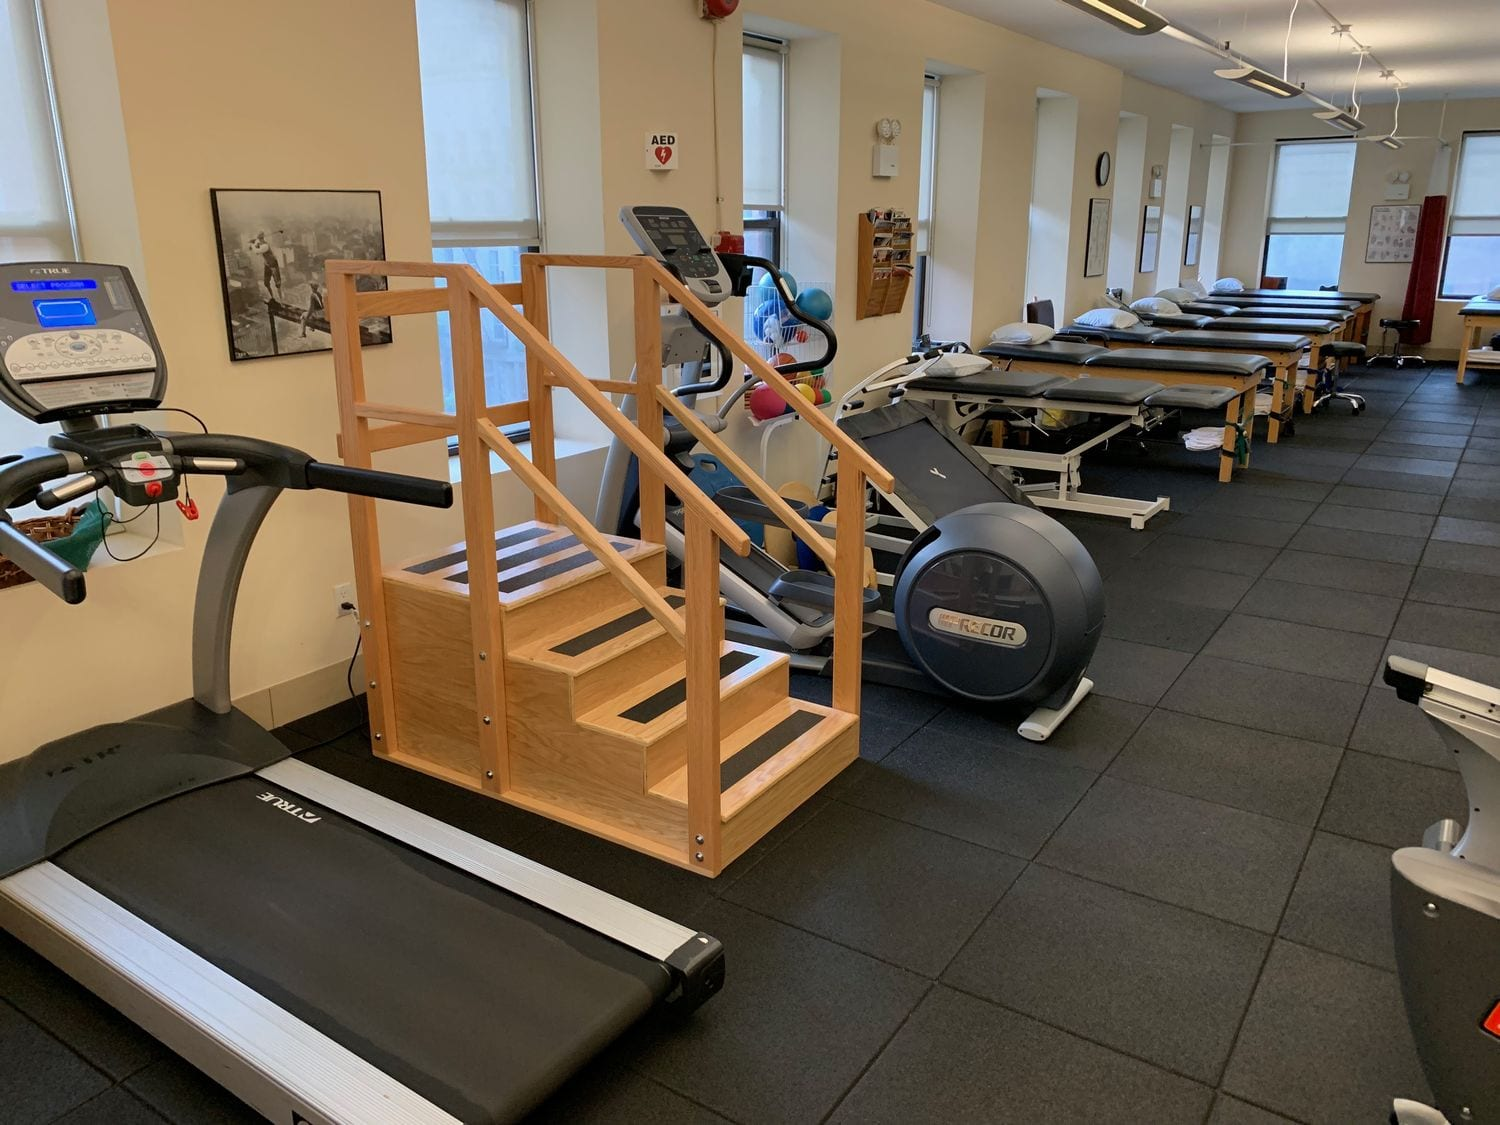 Stairs and treadmills at our physical therapy clinic in Manhattan, New York City at Upper East Side on 87th st.